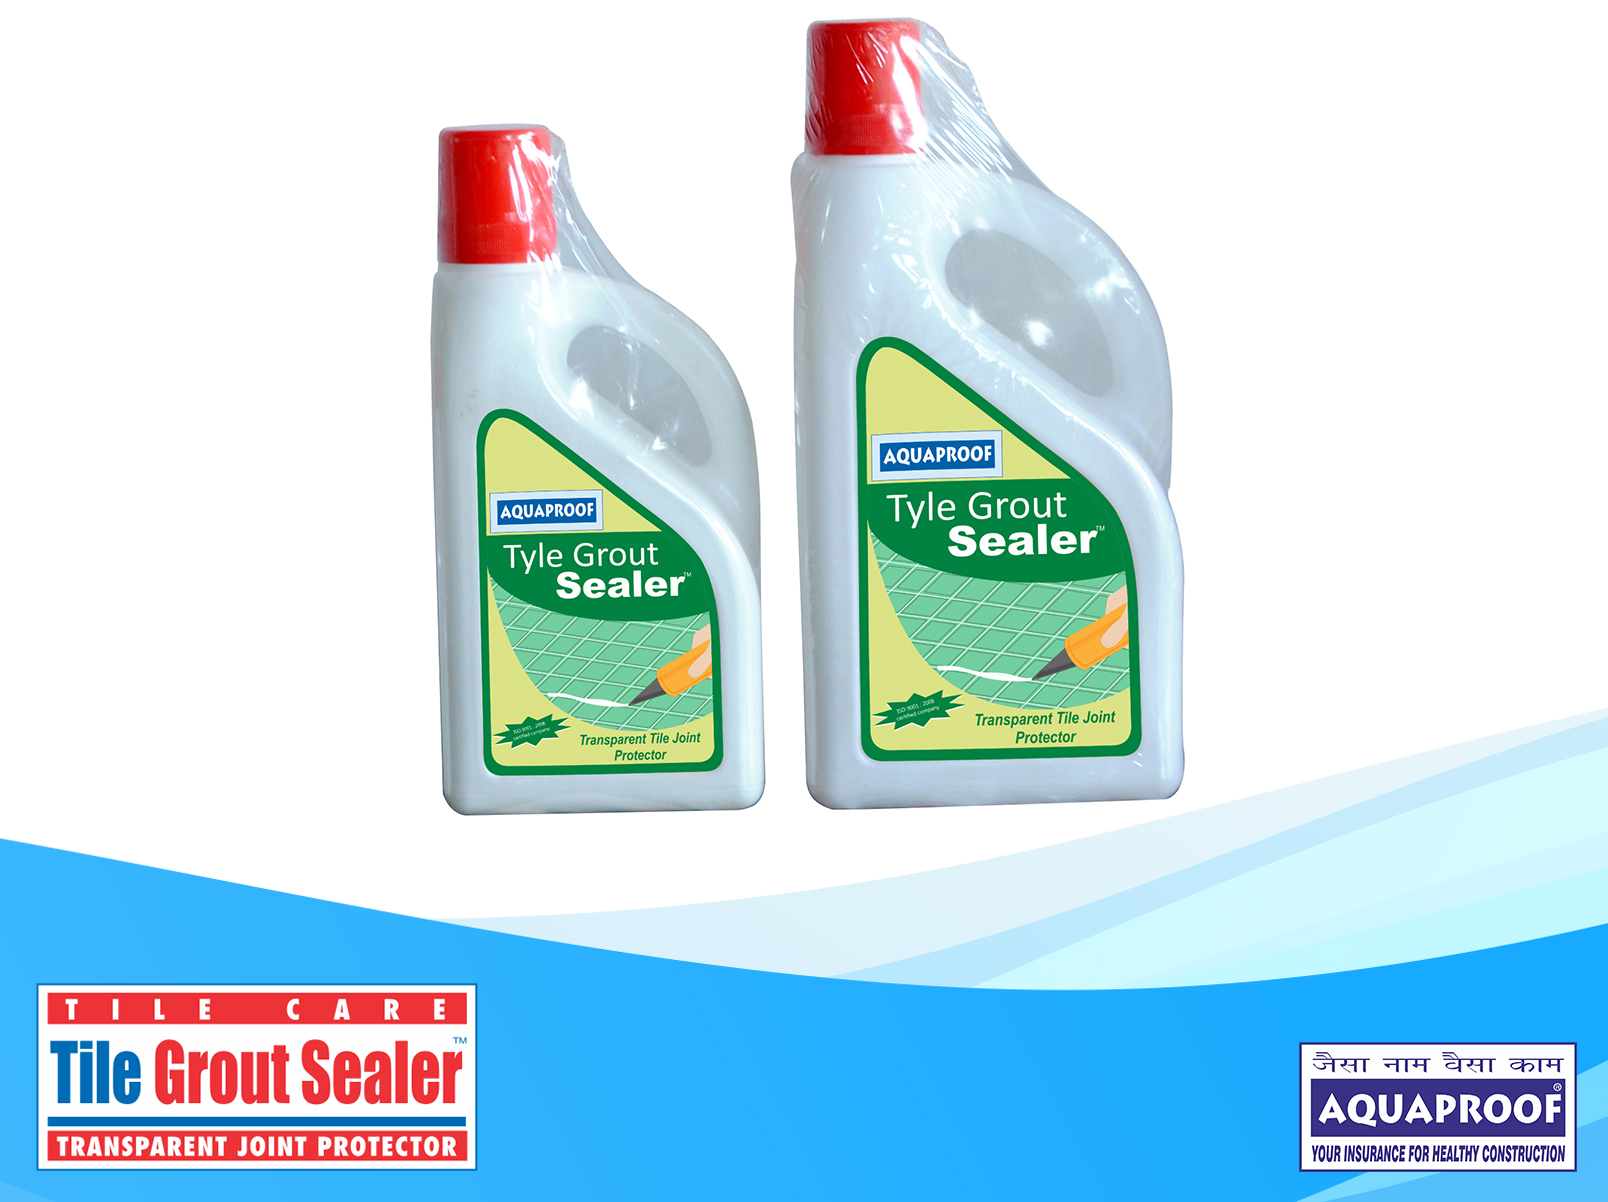 Tyle Grout Sealer